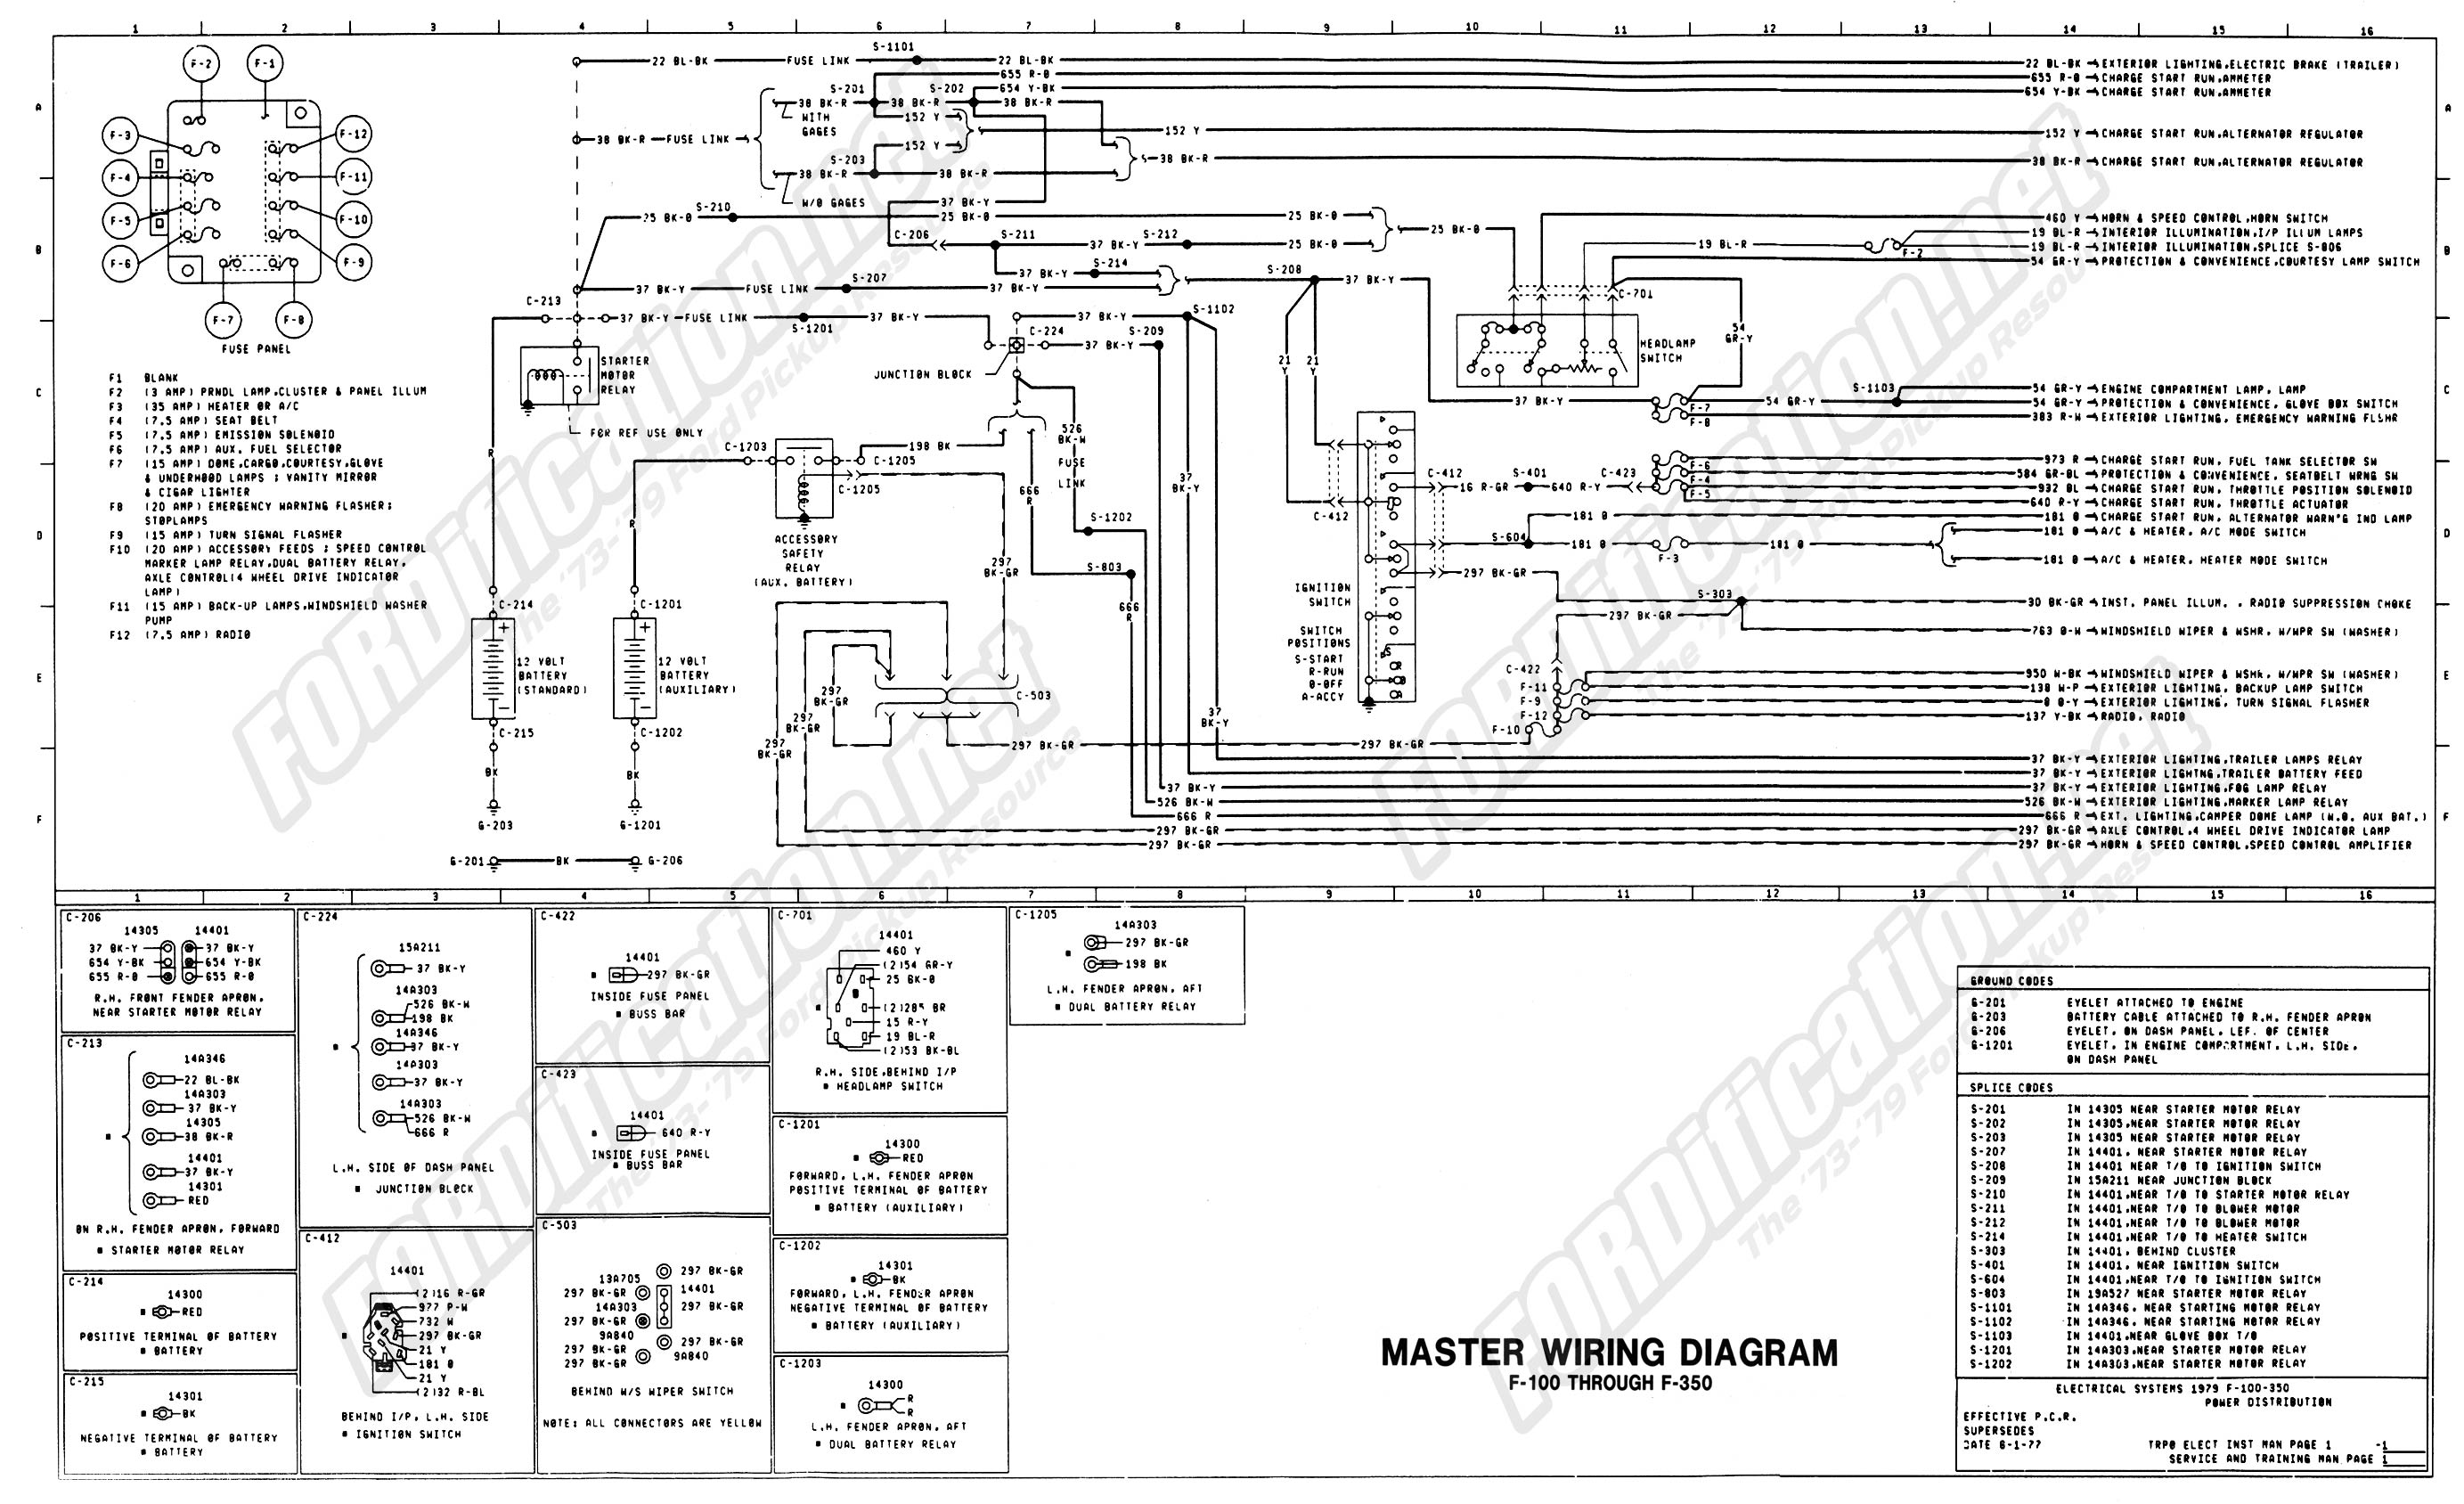 1976 ford dump truck wiring diagram house wiring diagram symbols u2022 rh maxturner co ford 5500 backhoe wiring diagram ford 555 backhoe starter wiring diagram